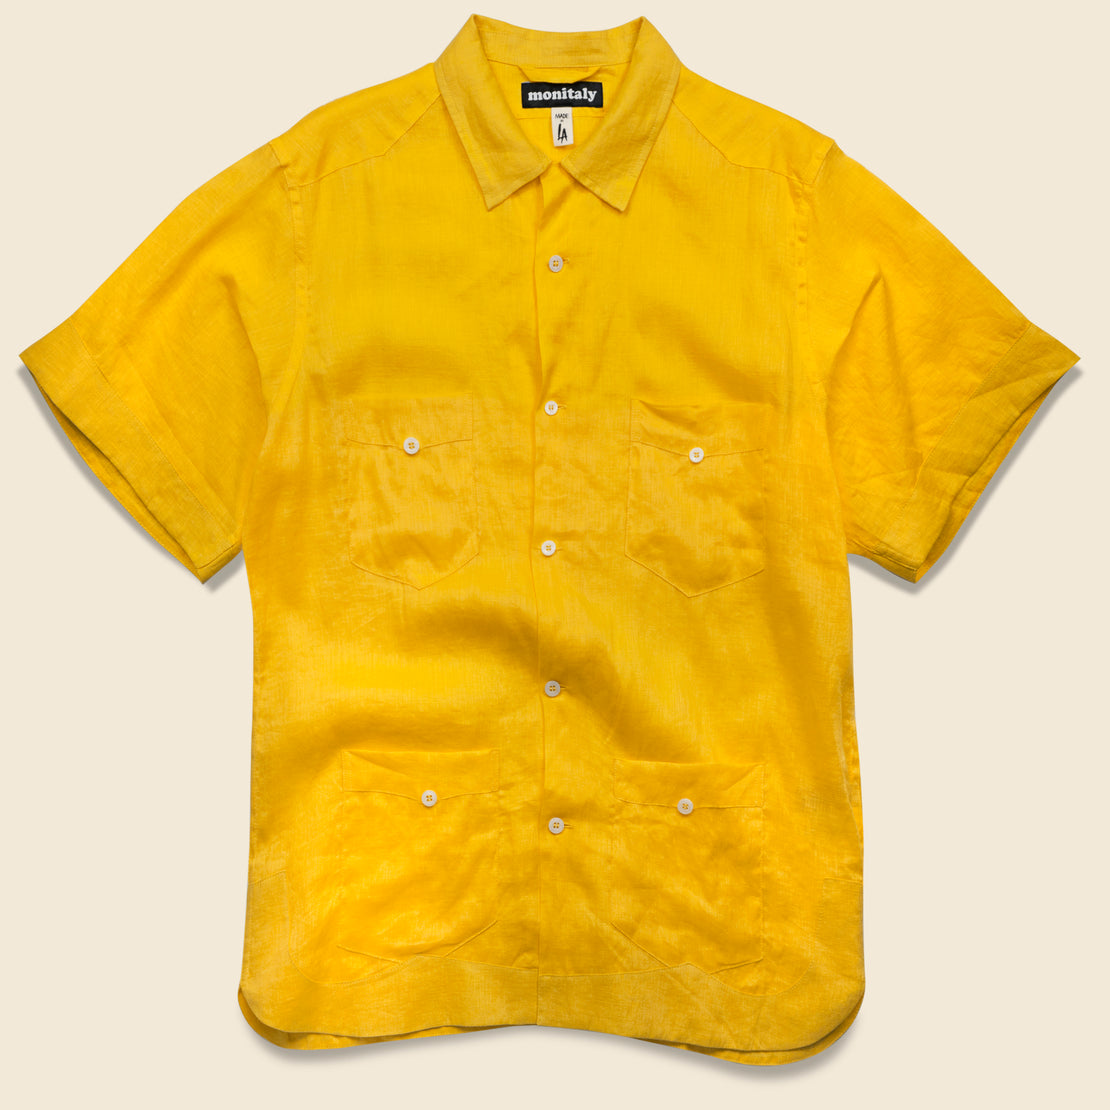 Monitaly Linen Guayabera Shirt - Yellow